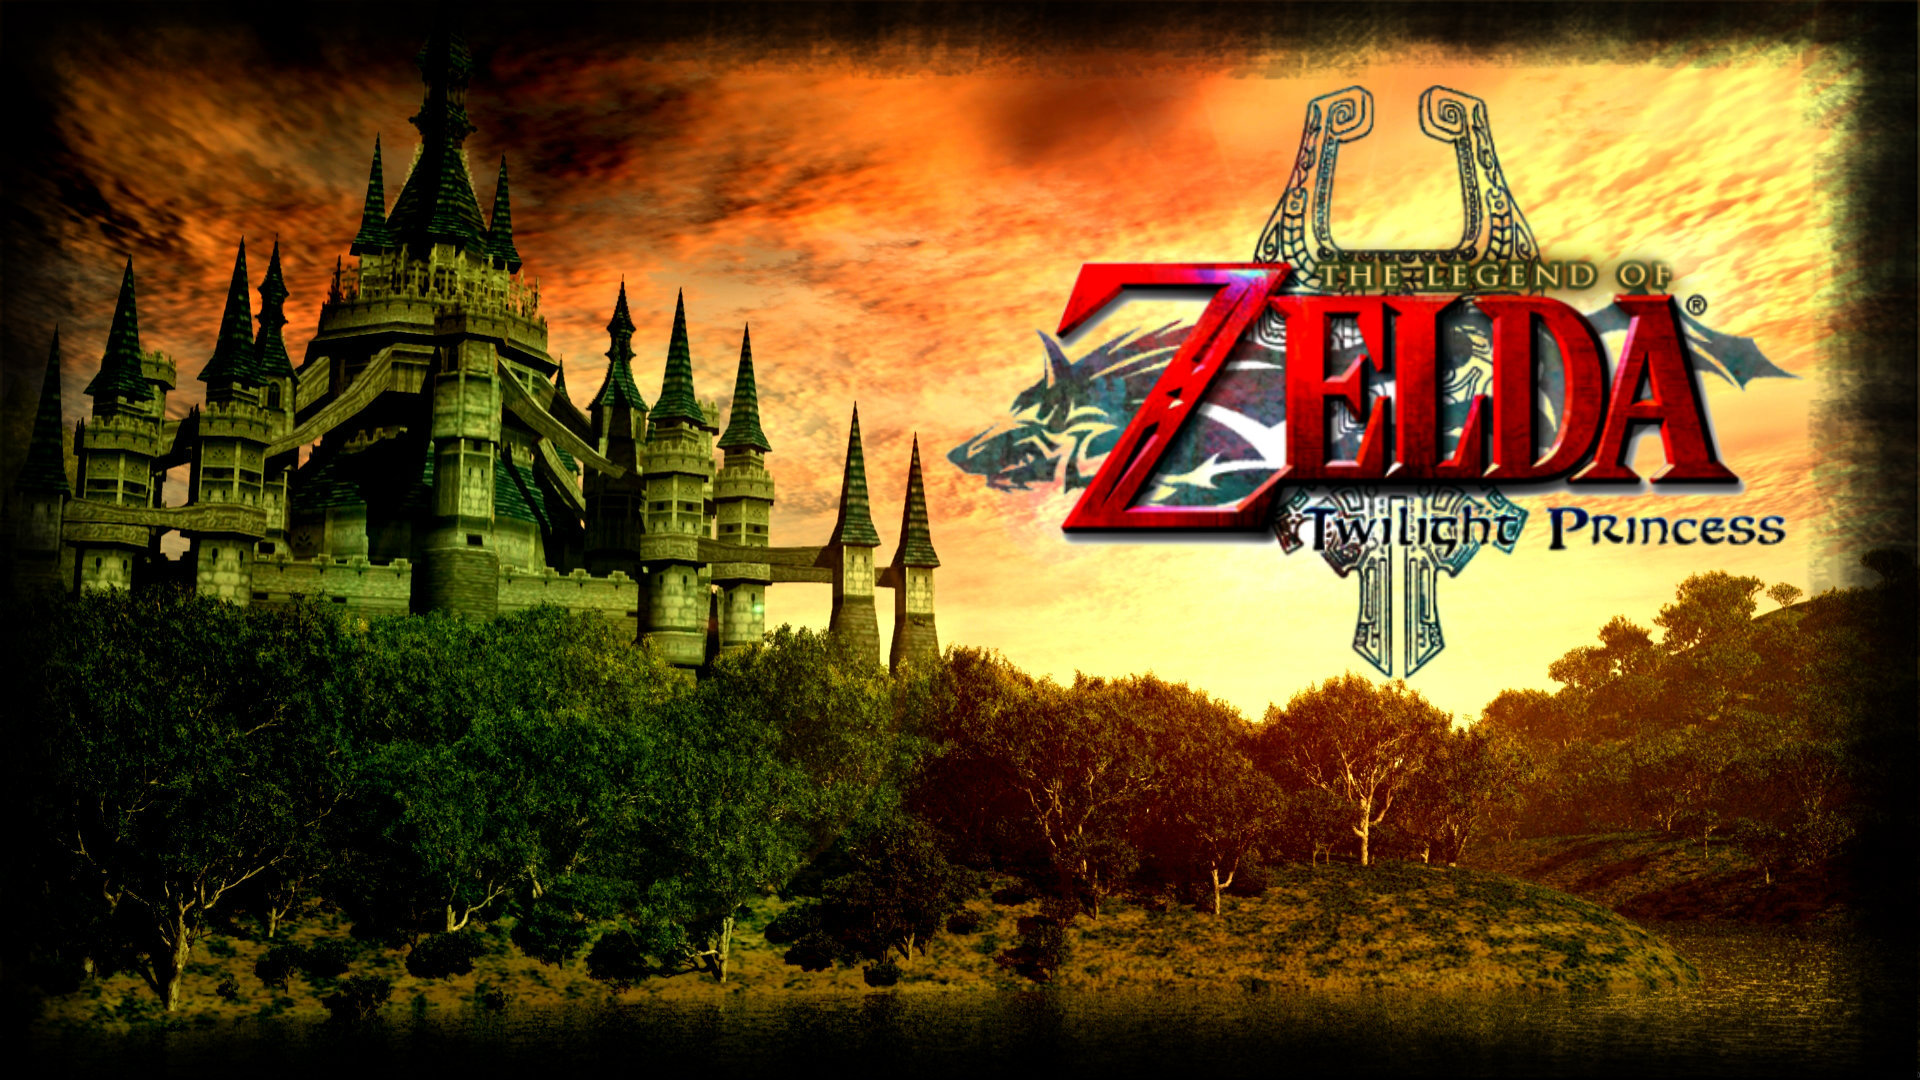 deviantartcomartZelda Twilight Princess Wallpaper 425602372 1920x1080